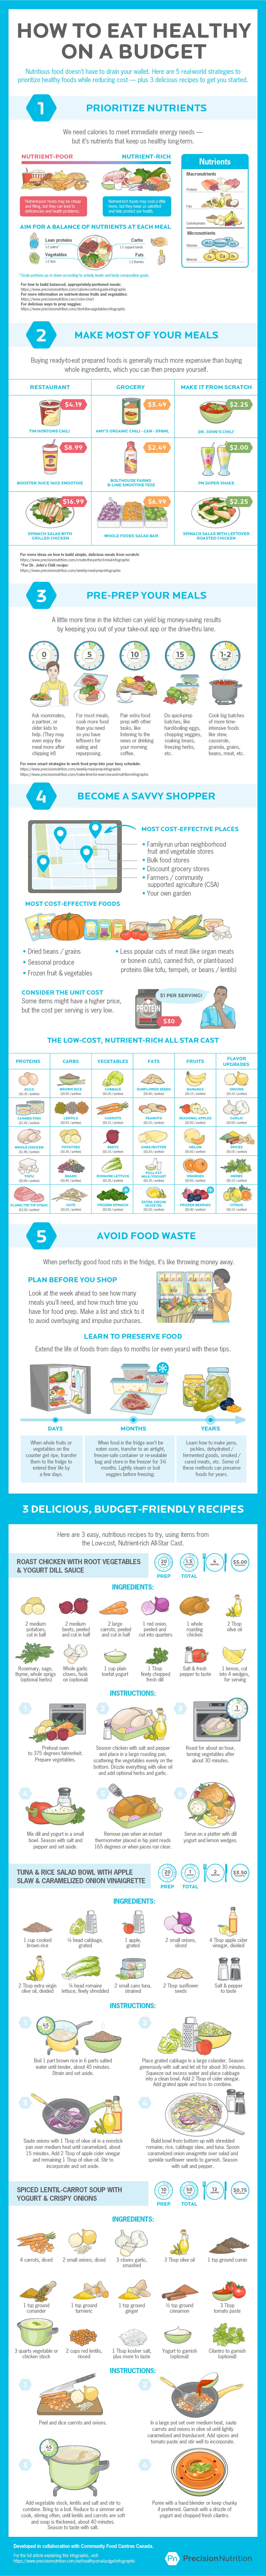 how-to-eat-healthy-on-a-budget-infographic-image-1.png